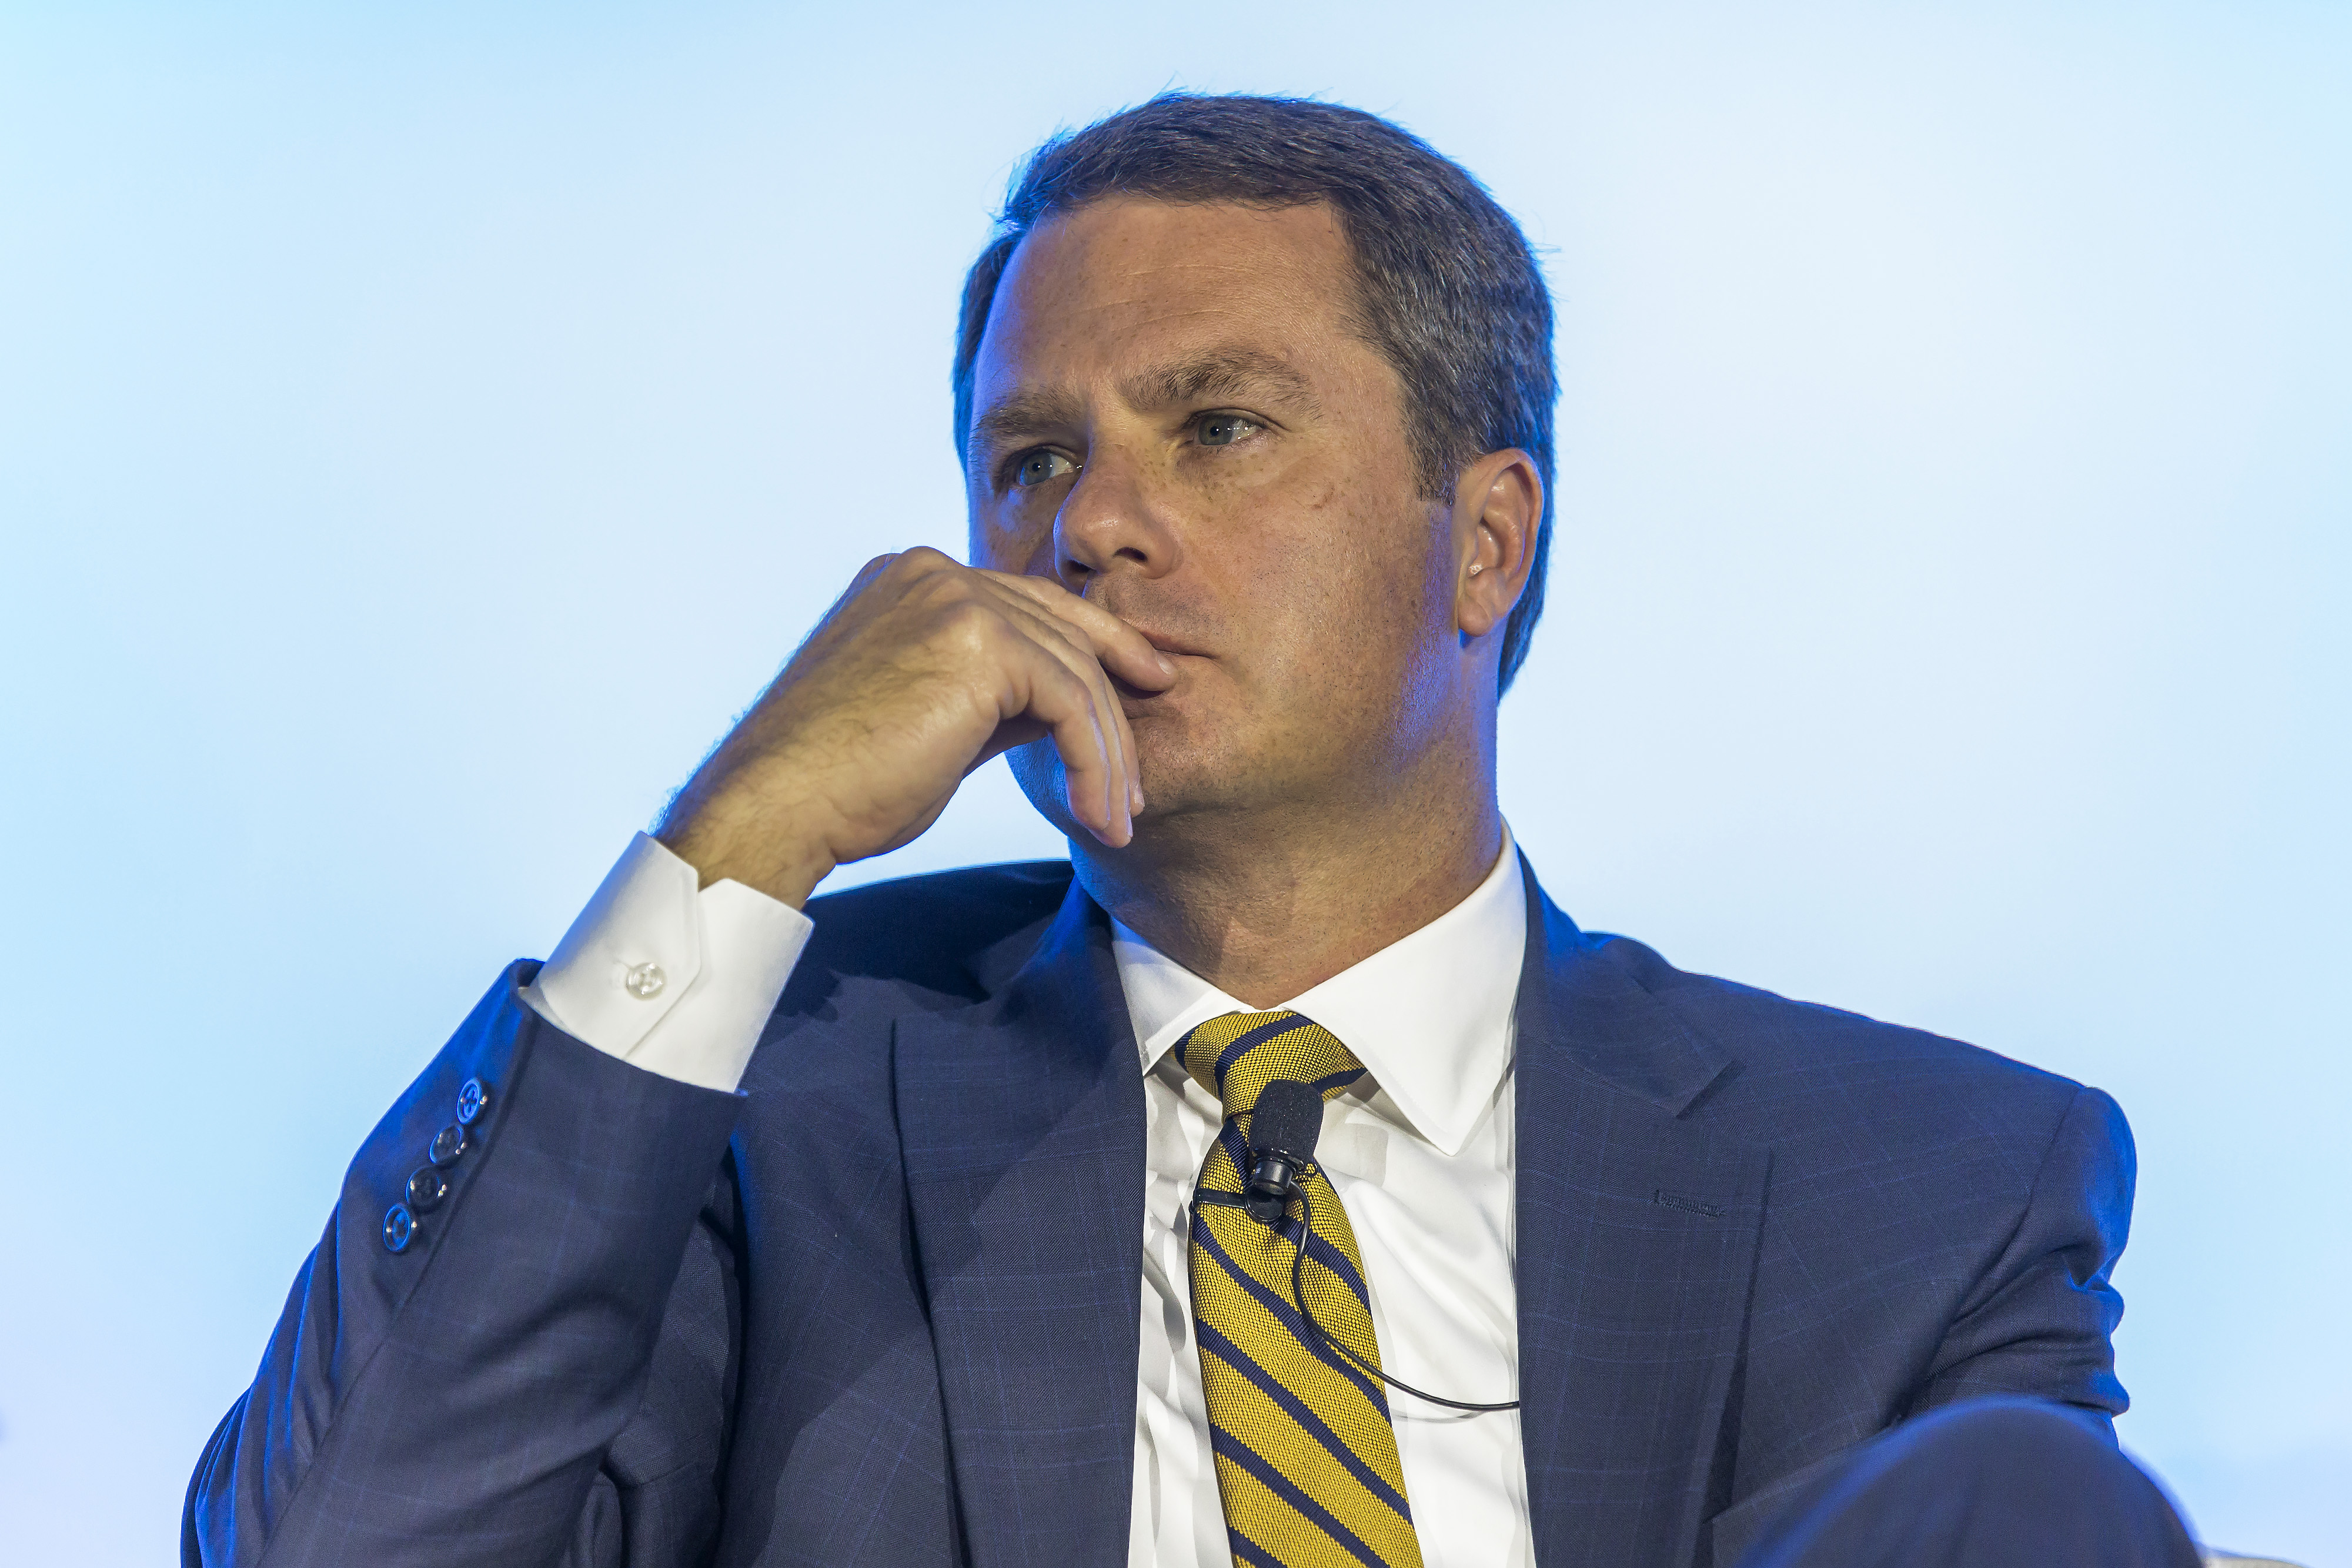 Doug McMillon, chief executive officer of Wal-Mart Stores Inc., pauses during a panel session at the 61st Global Summit of the Consumer Goods Forum (CGF) in Berlin, Germany, on Thursday, June 22, 2017.